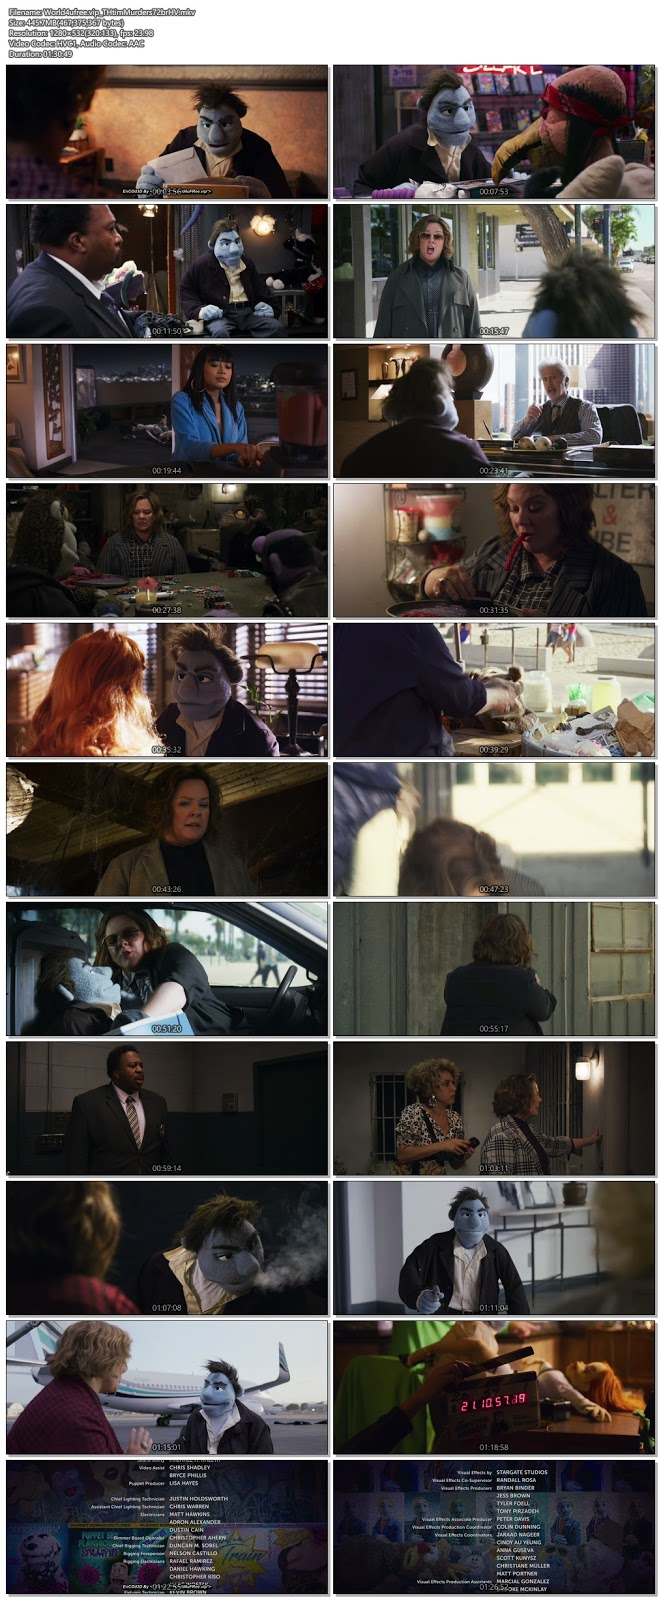 The Happytime Murders 2018 Eng 720p BRRip 450Mb ESub HEVC x265 ESub world4ufree.ws hollywood movie The Happytime Murders 2018 english movie 720p HEVC x265 BRRip blueray hdrip webrip The Happytime Murders 2018 HEVC x265 web-dl 720p free download or watch online at world4ufree.ws